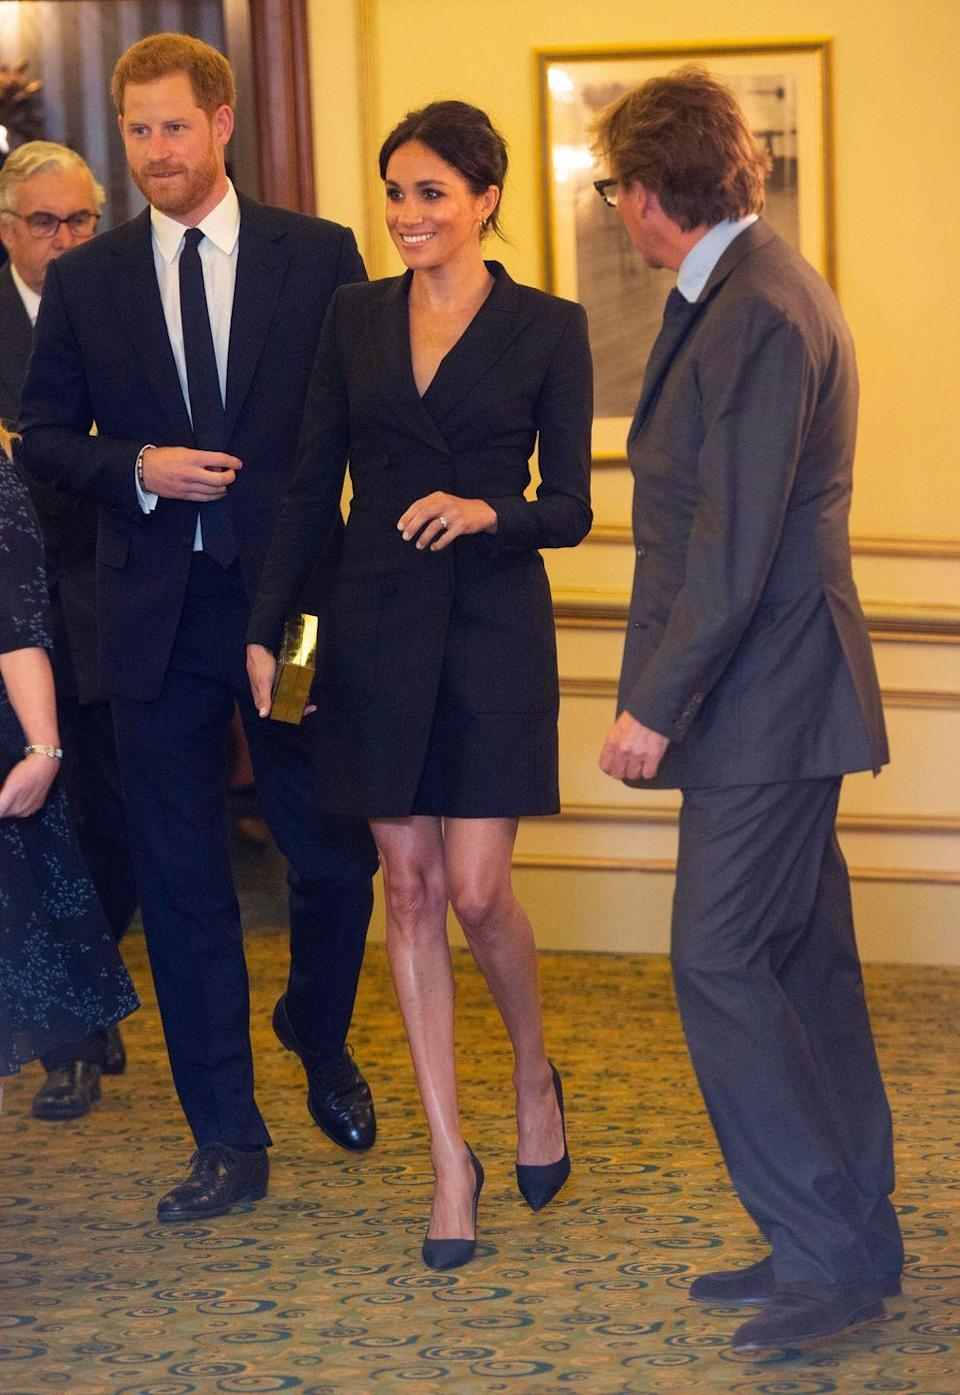 """<p>Meghan arrives at a performance of <em>Hamilton</em> wearing a sleek black mini dress from Canadian brand Judith & Charles. <a href=""""https://www.townandcountrymag.com/style/fashion-trends/a22861883/meghan-markle-black-mini-dress-judith-charles-hamilton-sentebale-gala/"""" rel=""""nofollow noopener"""" target=""""_blank"""" data-ylk=""""slk:Get all the details on her look here."""" class=""""link rapid-noclick-resp"""">Get all the details on her look here.</a></p>"""